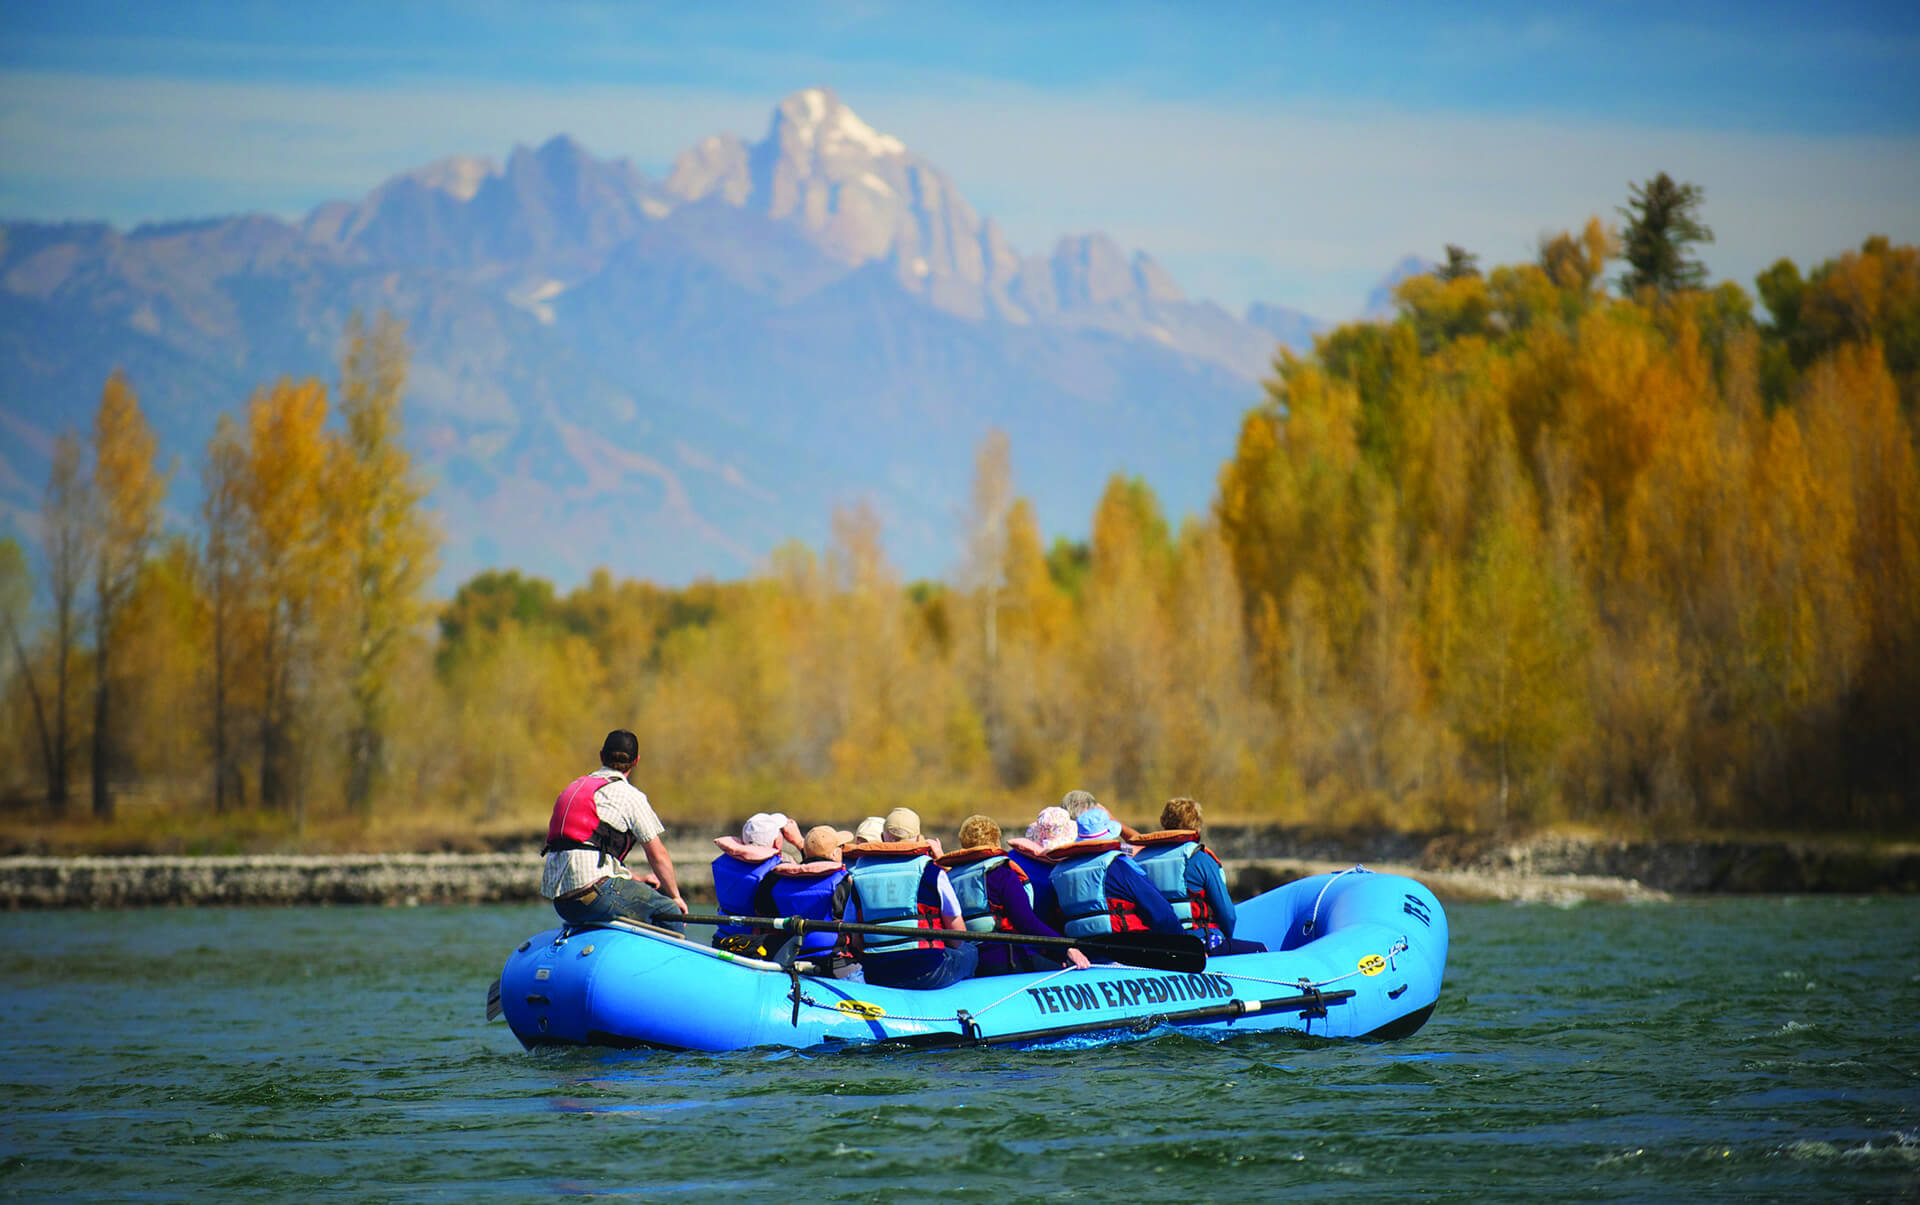 group of people on scenic float trip with mountains in background